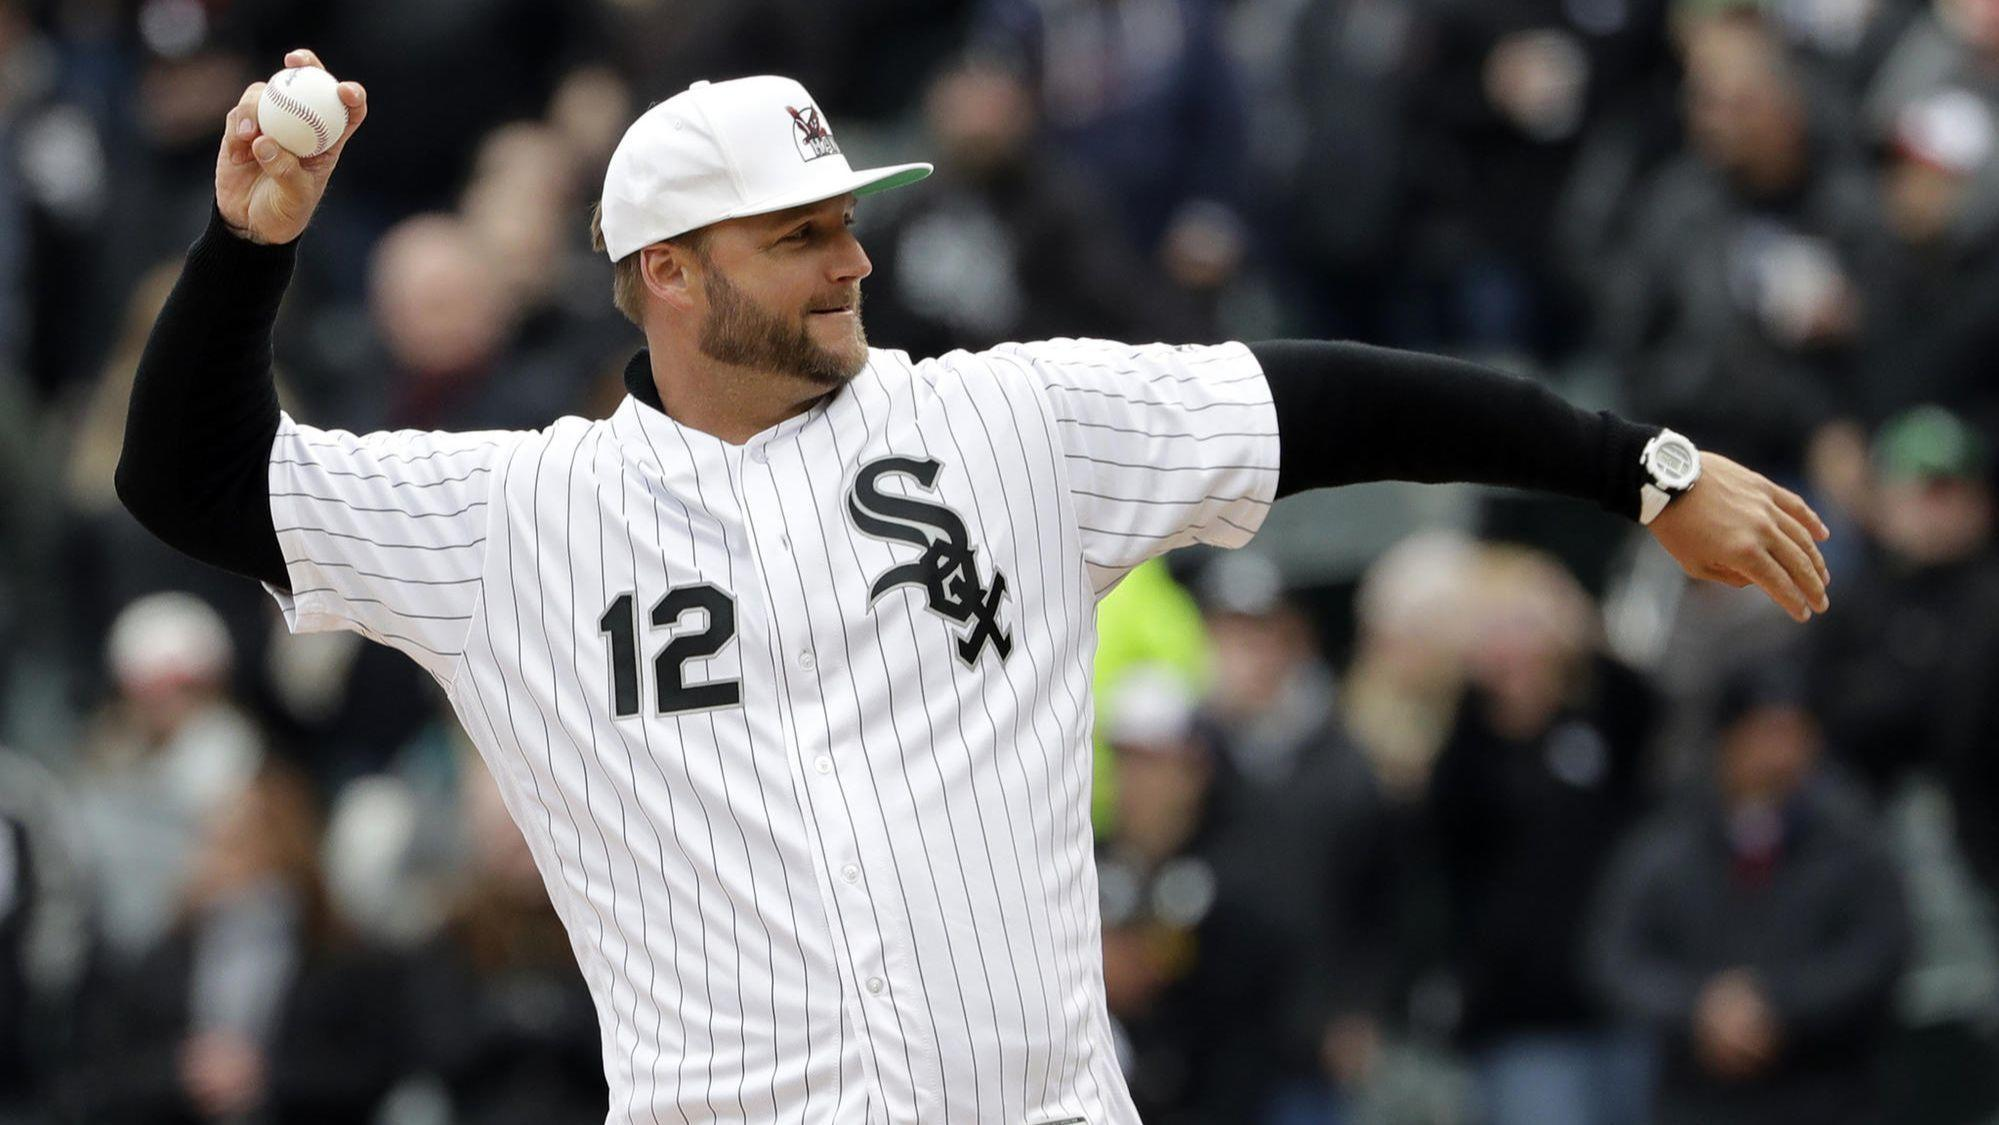 Ct-spt-white-sox-aj-pierzynski-q-and-a-20180514